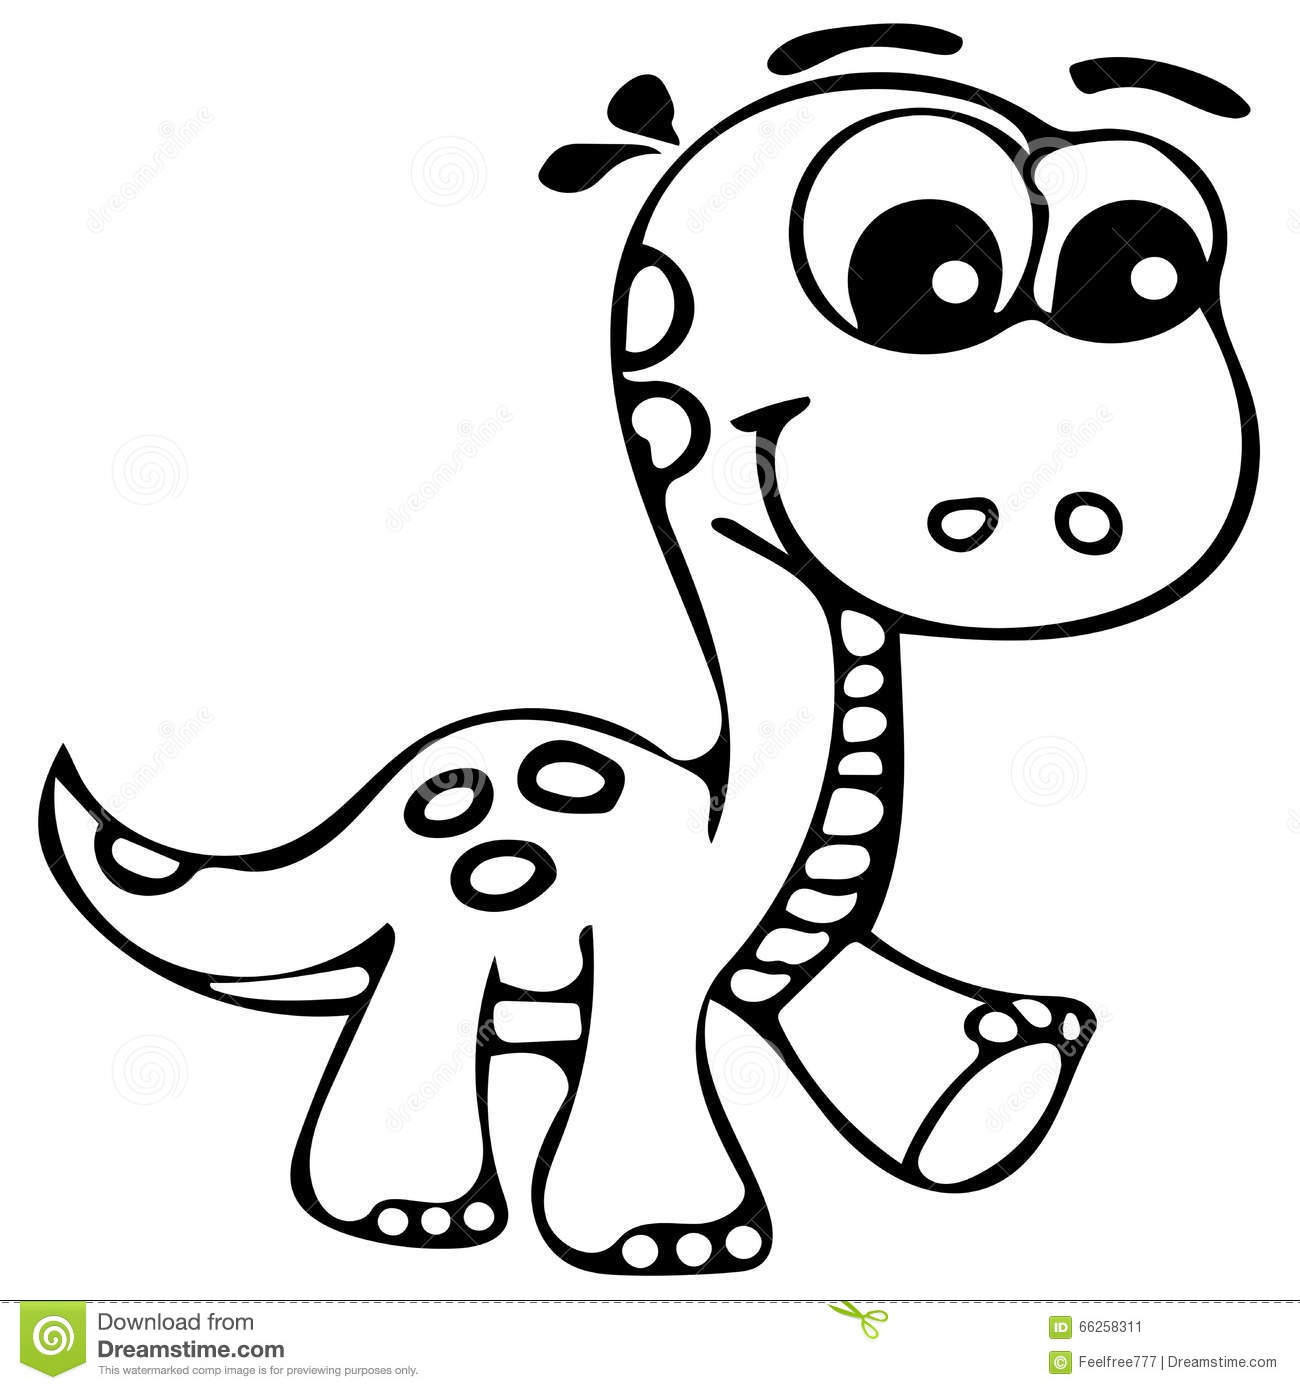 cute baby dinosaur coloring pages baby dinosaur coloring pages to download and print for free pages cute dinosaur coloring baby